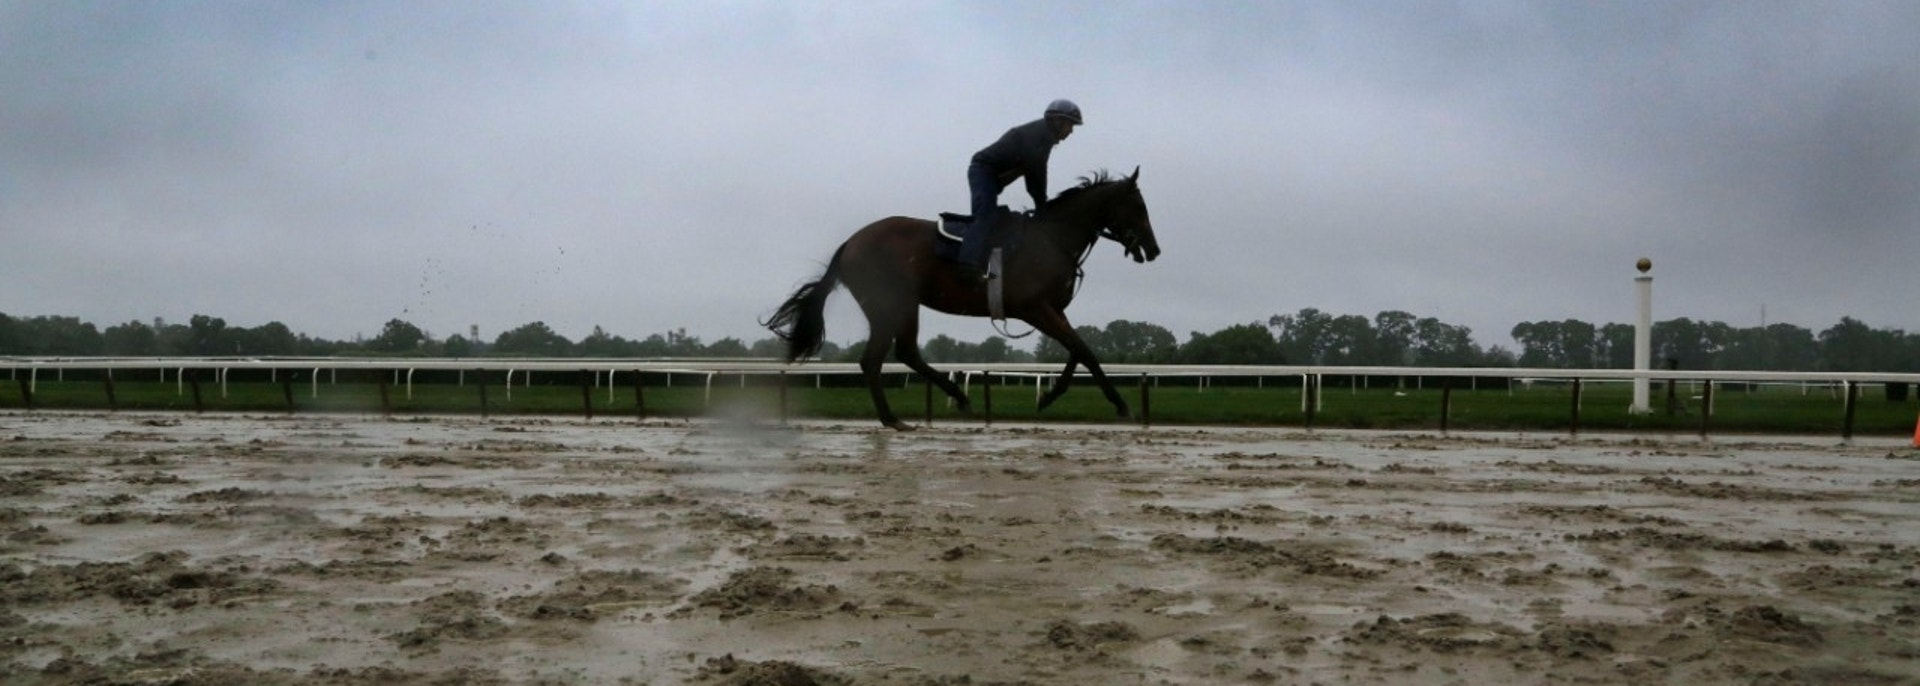 A horse gallops on the rain-soaked track at Belmont Park during a morning workout Friday, June 7, 2013 in Elmont, N.Y. Saturday is the Belmont Stakes horse race. (AP Photo/Mark Lennihan)